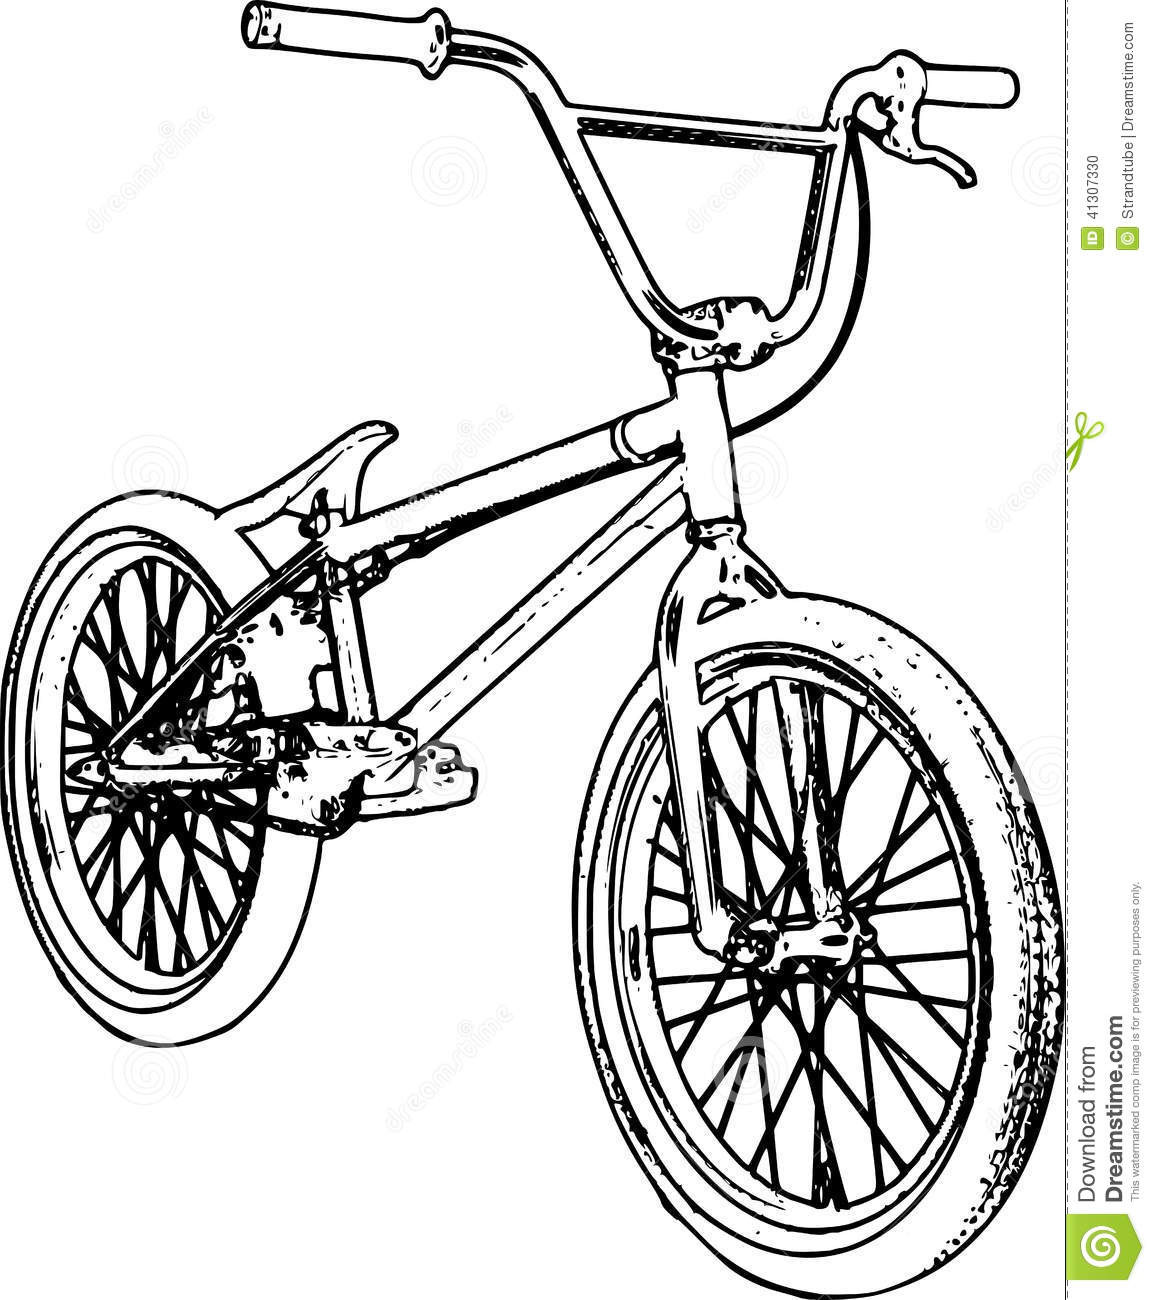 bmx printable coloring pages bmx coloring page coloring home bmx pages printable coloring